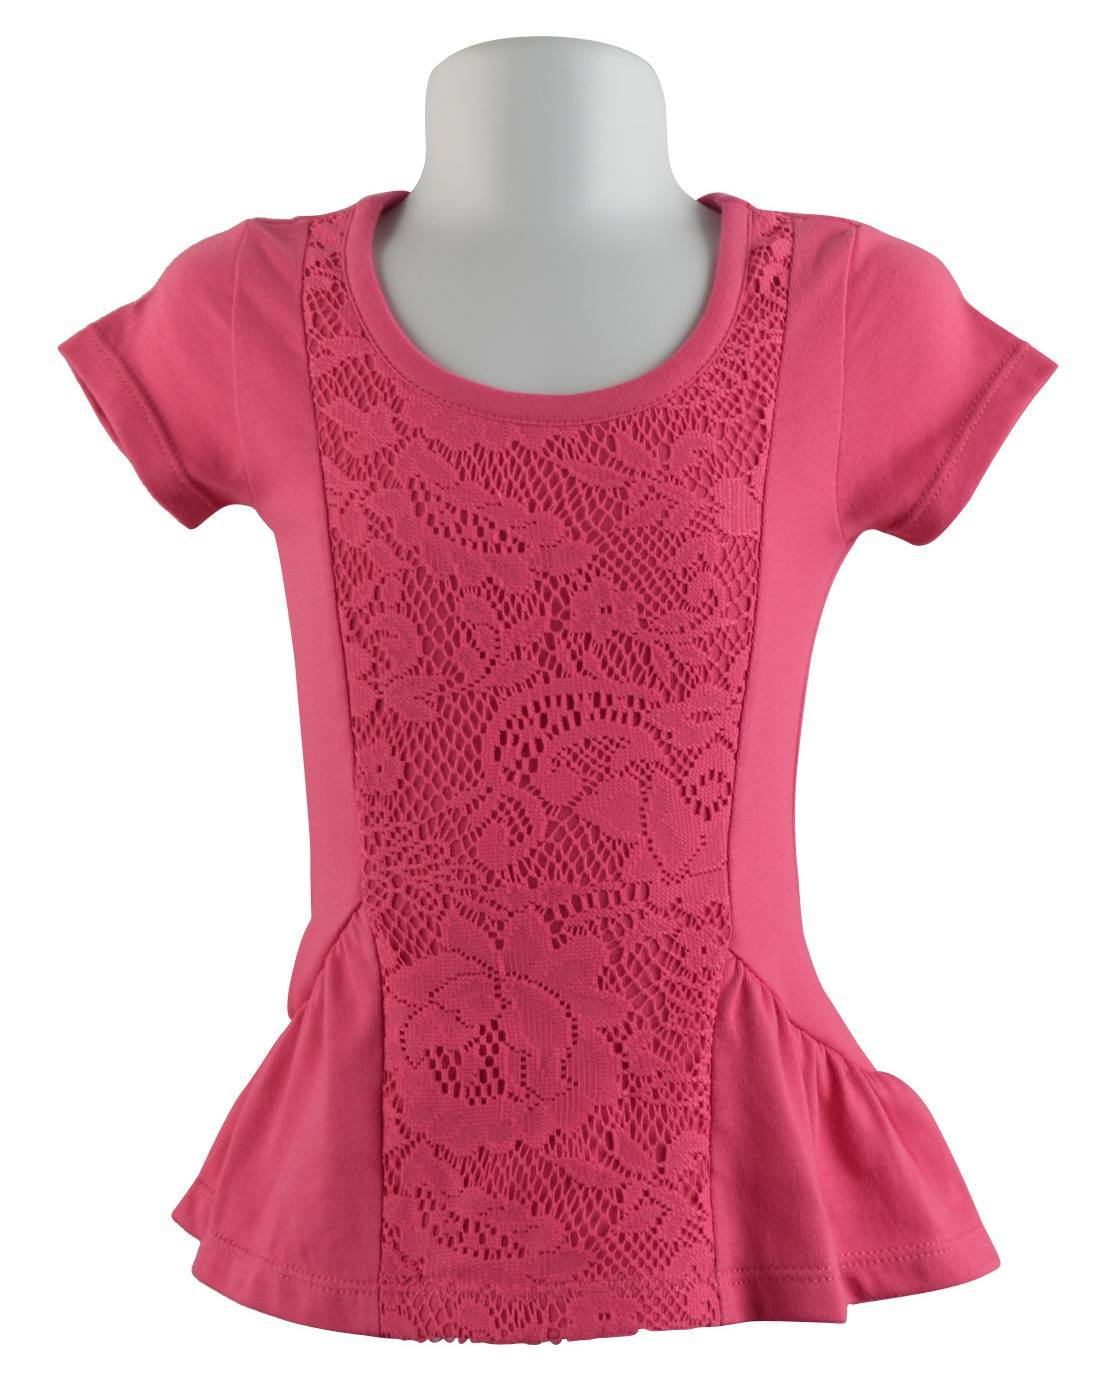 Girls Short Sleeve Floral Lace Top with Flared Hem-id.29210